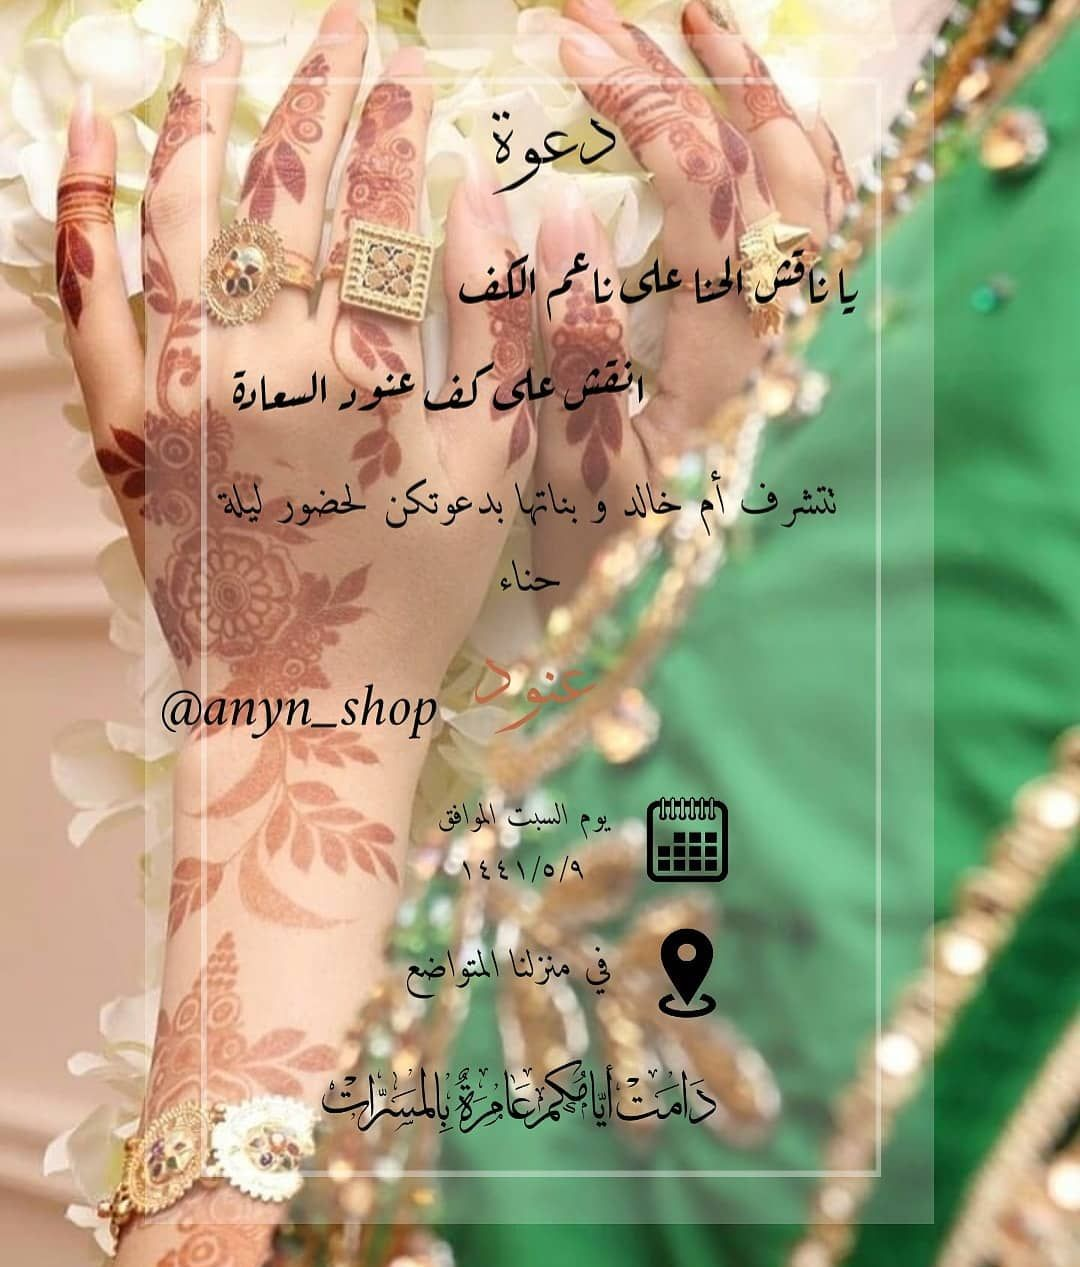 تصميم بطاقة دعوه On Instagram دعوة حناء عرض خاص الدعو Wedding Invitation Background Digital Wedding Invitations Design Wedding Invitation Card Design